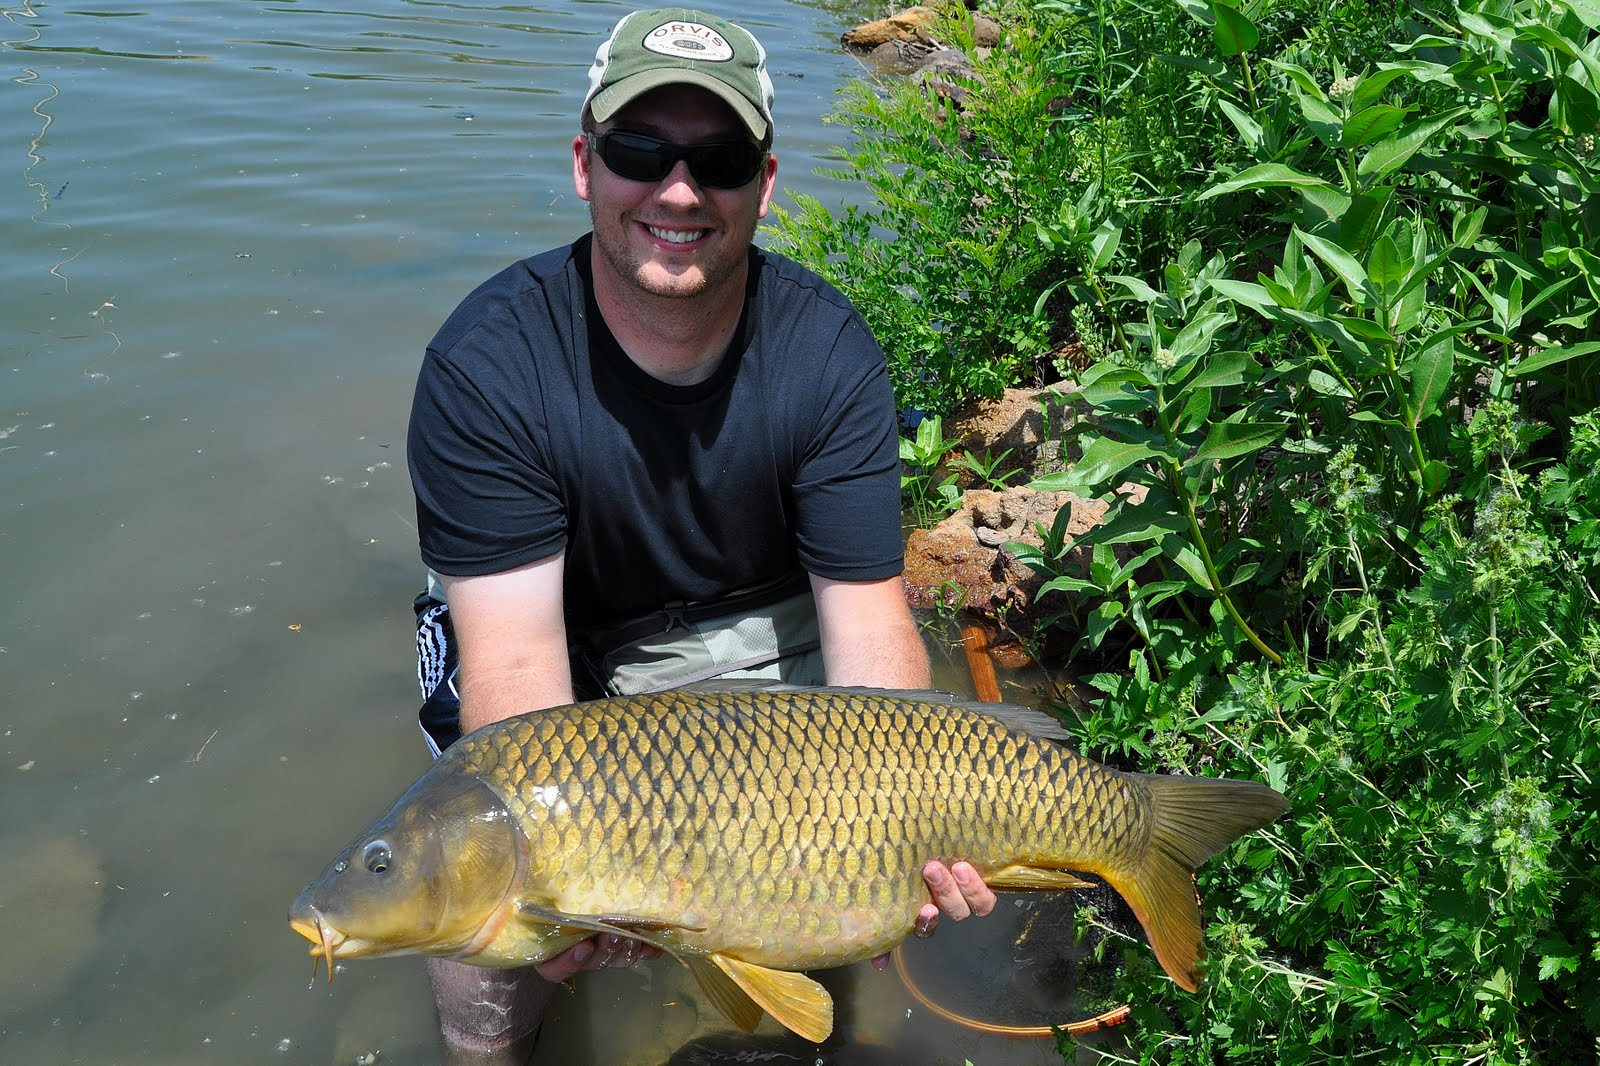 Colorado springs urban flyfishing investment banking for Fishing lakes in colorado springs